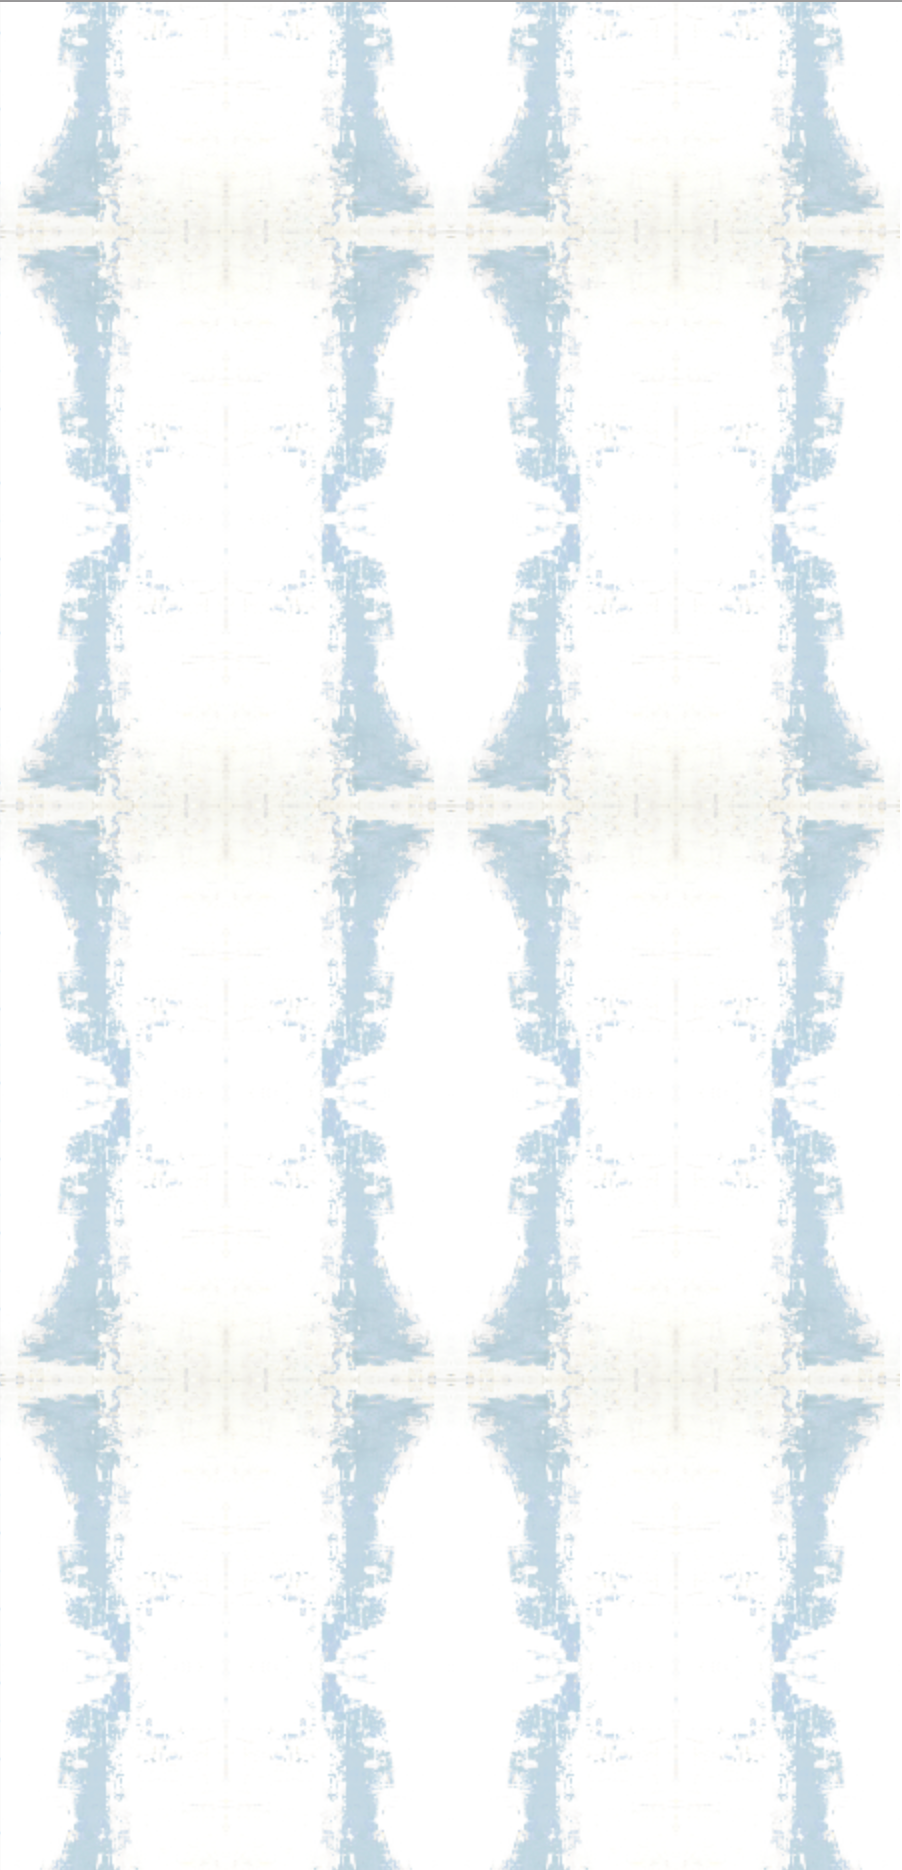 pale blue and white wallpaper, plaster wallcovering, plaster wallpaper, textured wallpaper, grasscloth wallpaper pale blue, blue grasscloth wallpaper